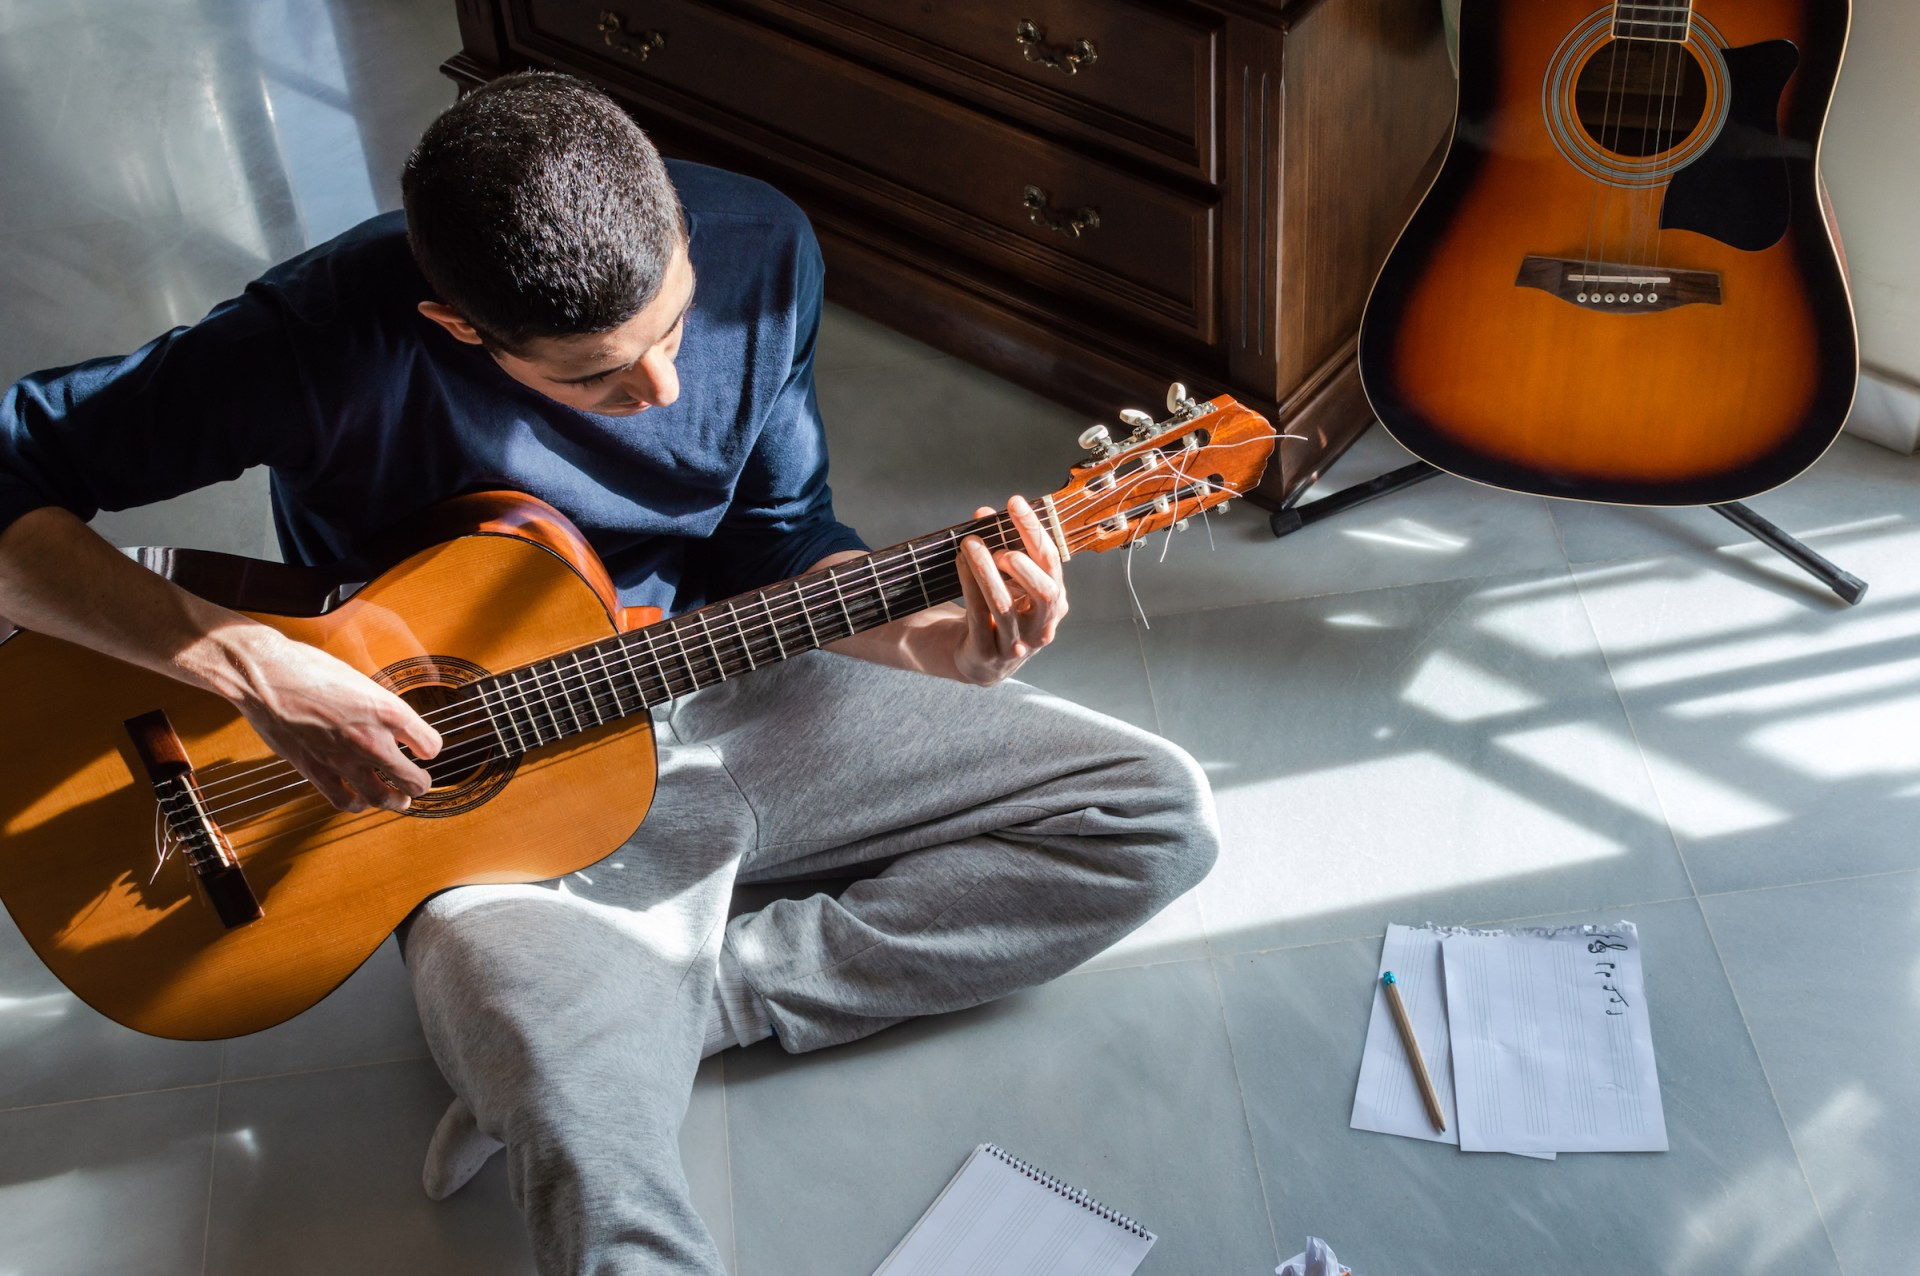 The Best Beginner Guitar Books 2020: Learn to Play Guitar Online ...